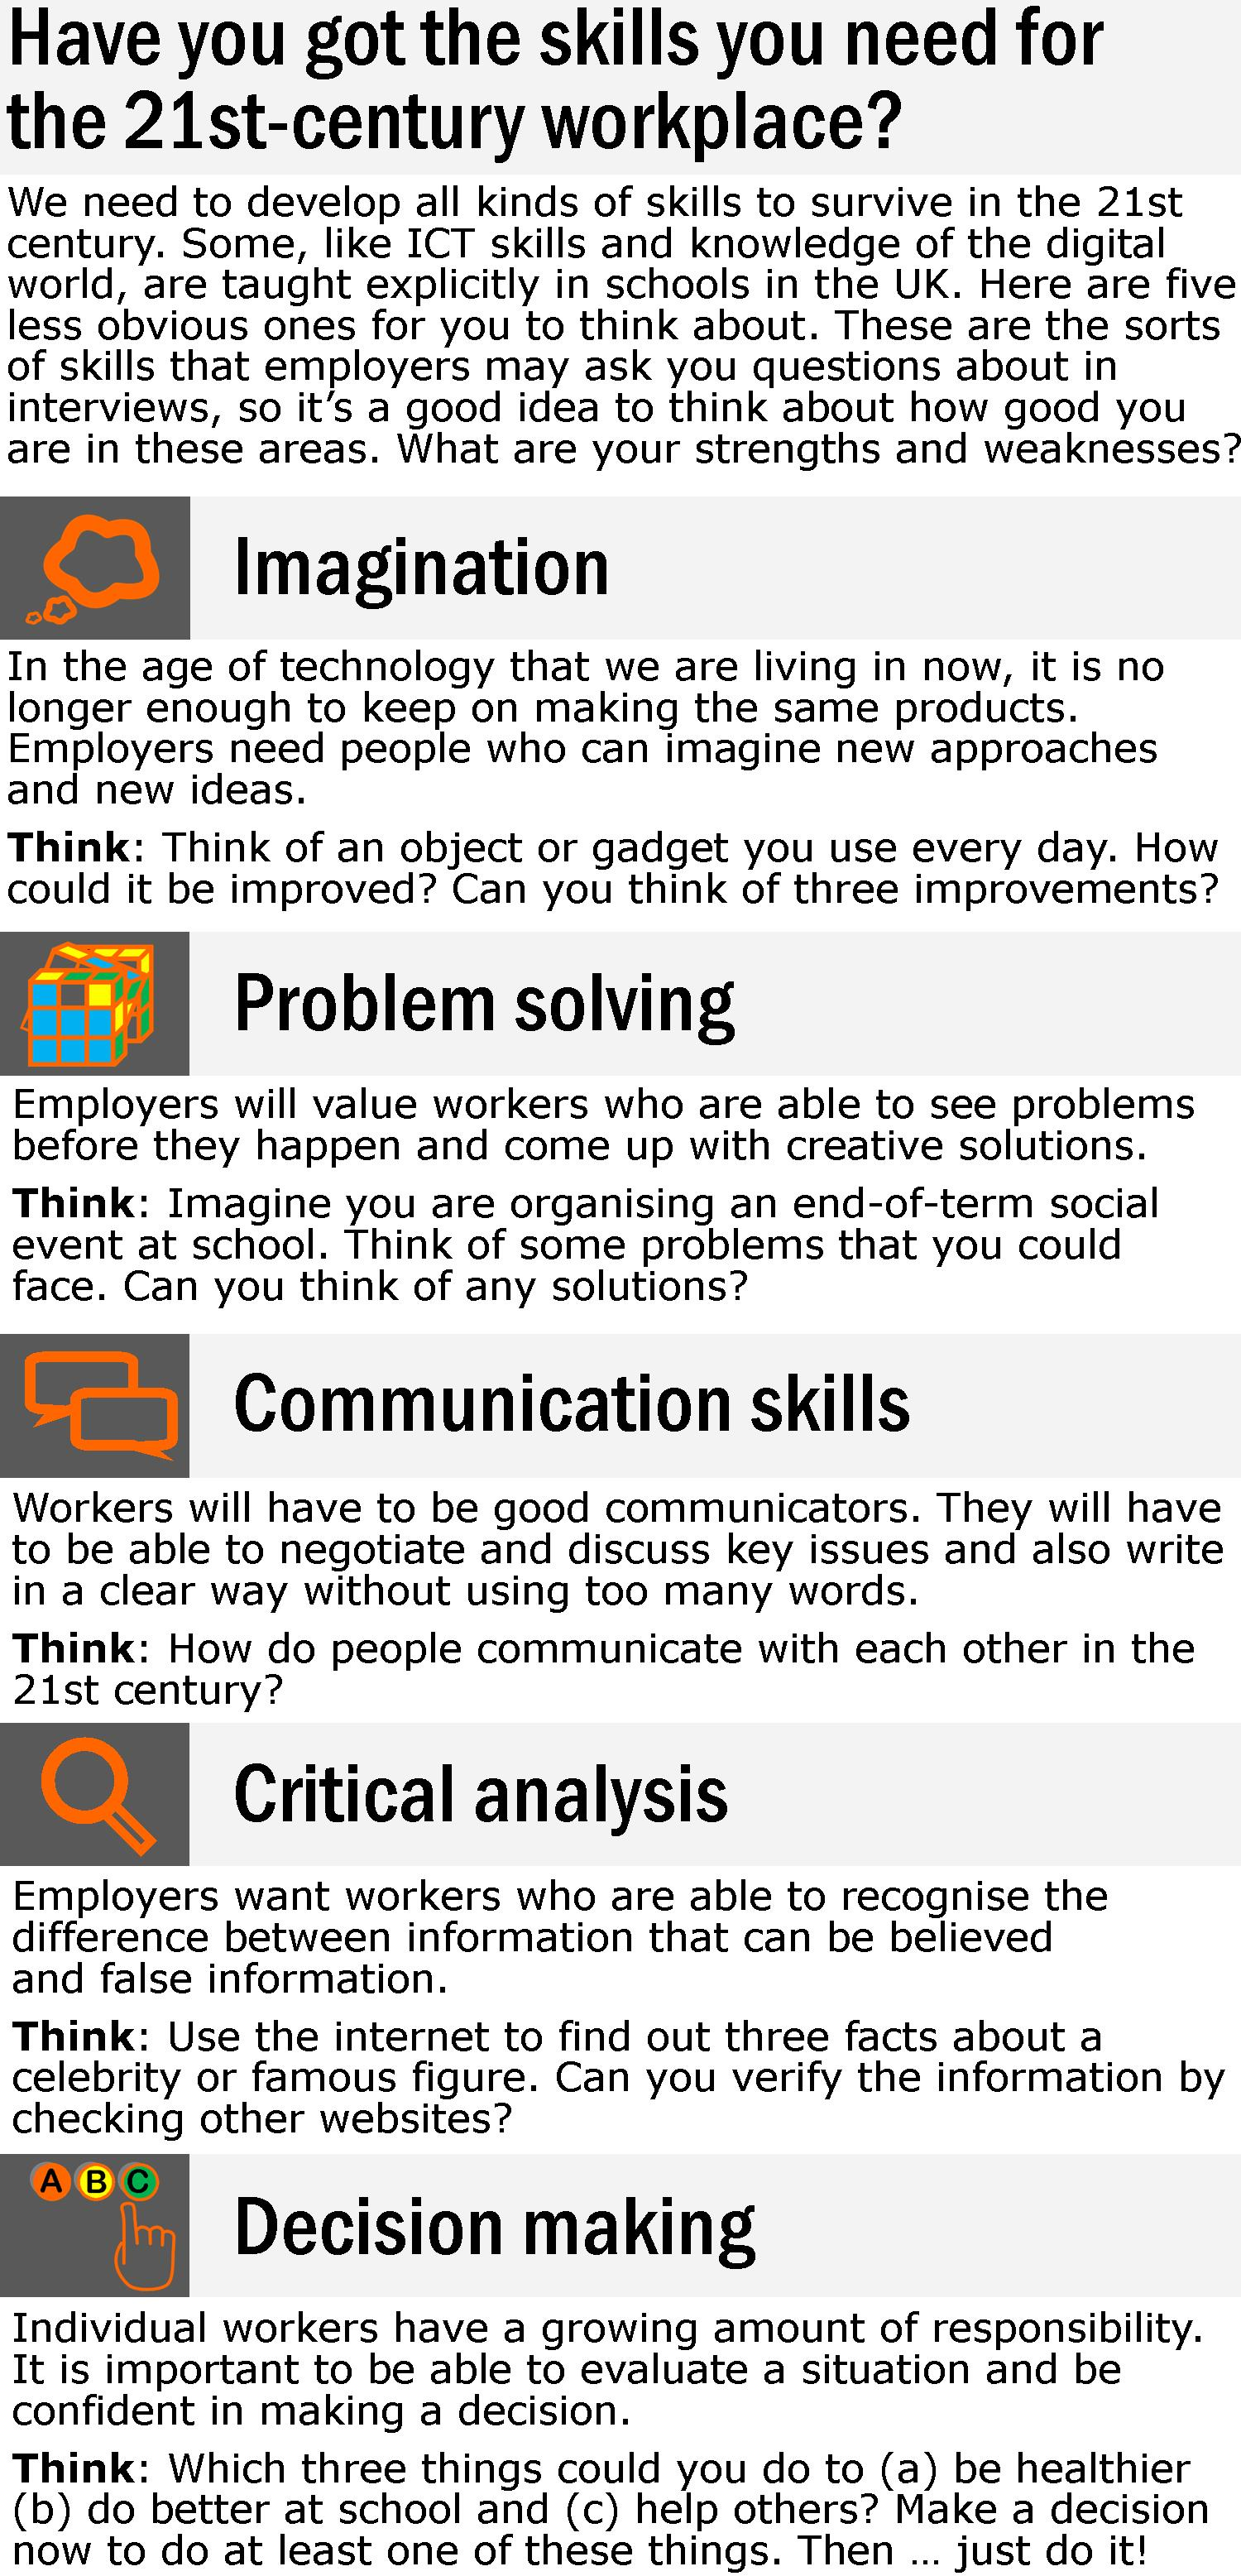 Skills For The 21st Century Workplace